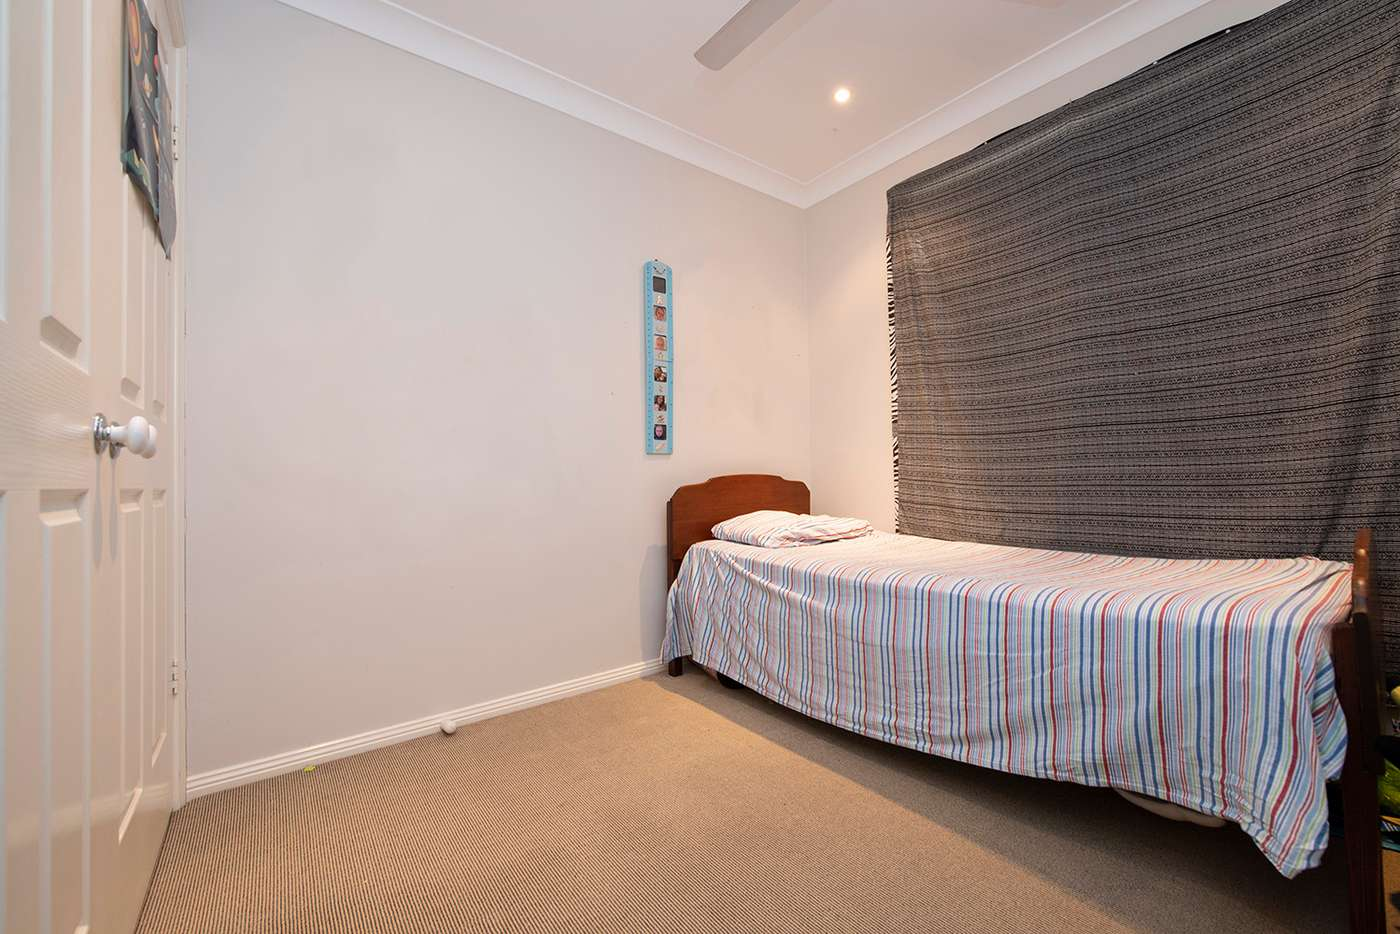 Sixth view of Homely villa listing, 2/14 Paxton Street, Denman NSW 2328